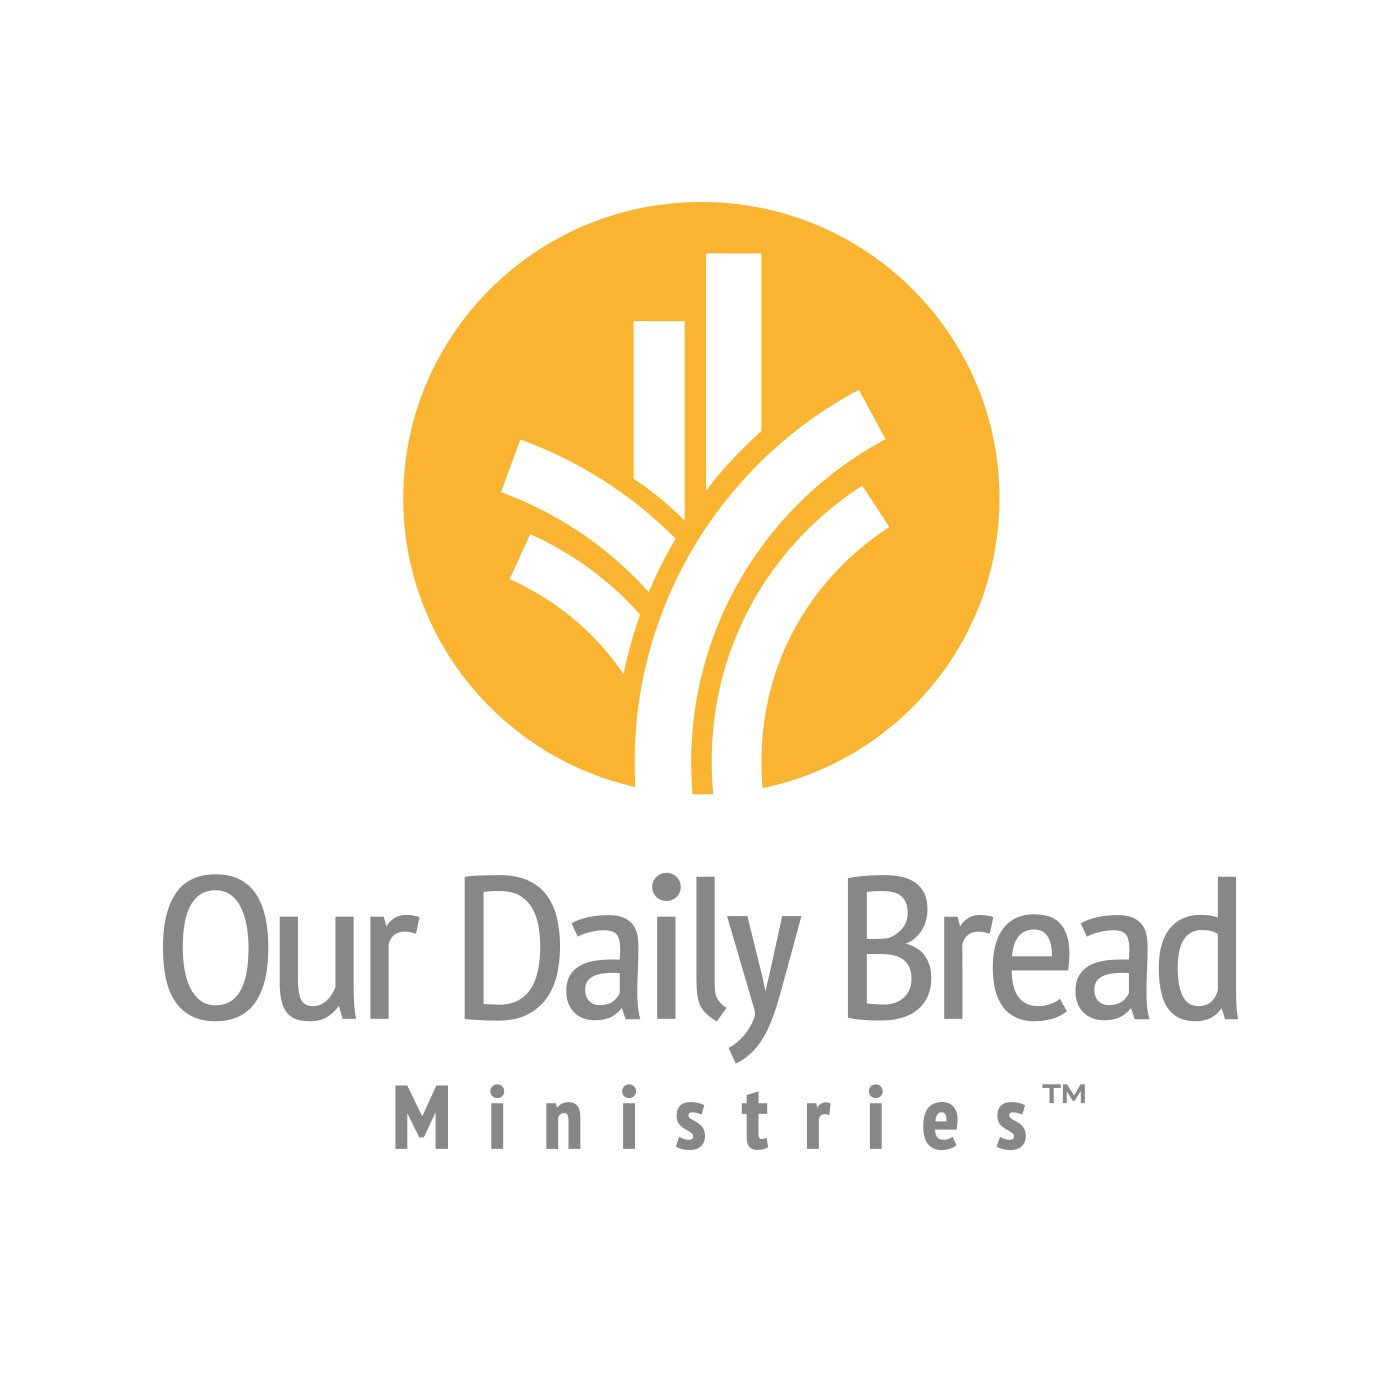 Our Daily Bread 13 October 2019 Devotional, Our Daily Bread 13 October 2019 Devotional – Worth the Wait, Latest Nigeria News, Daily Devotionals & Celebrity Gossips - Chidispalace